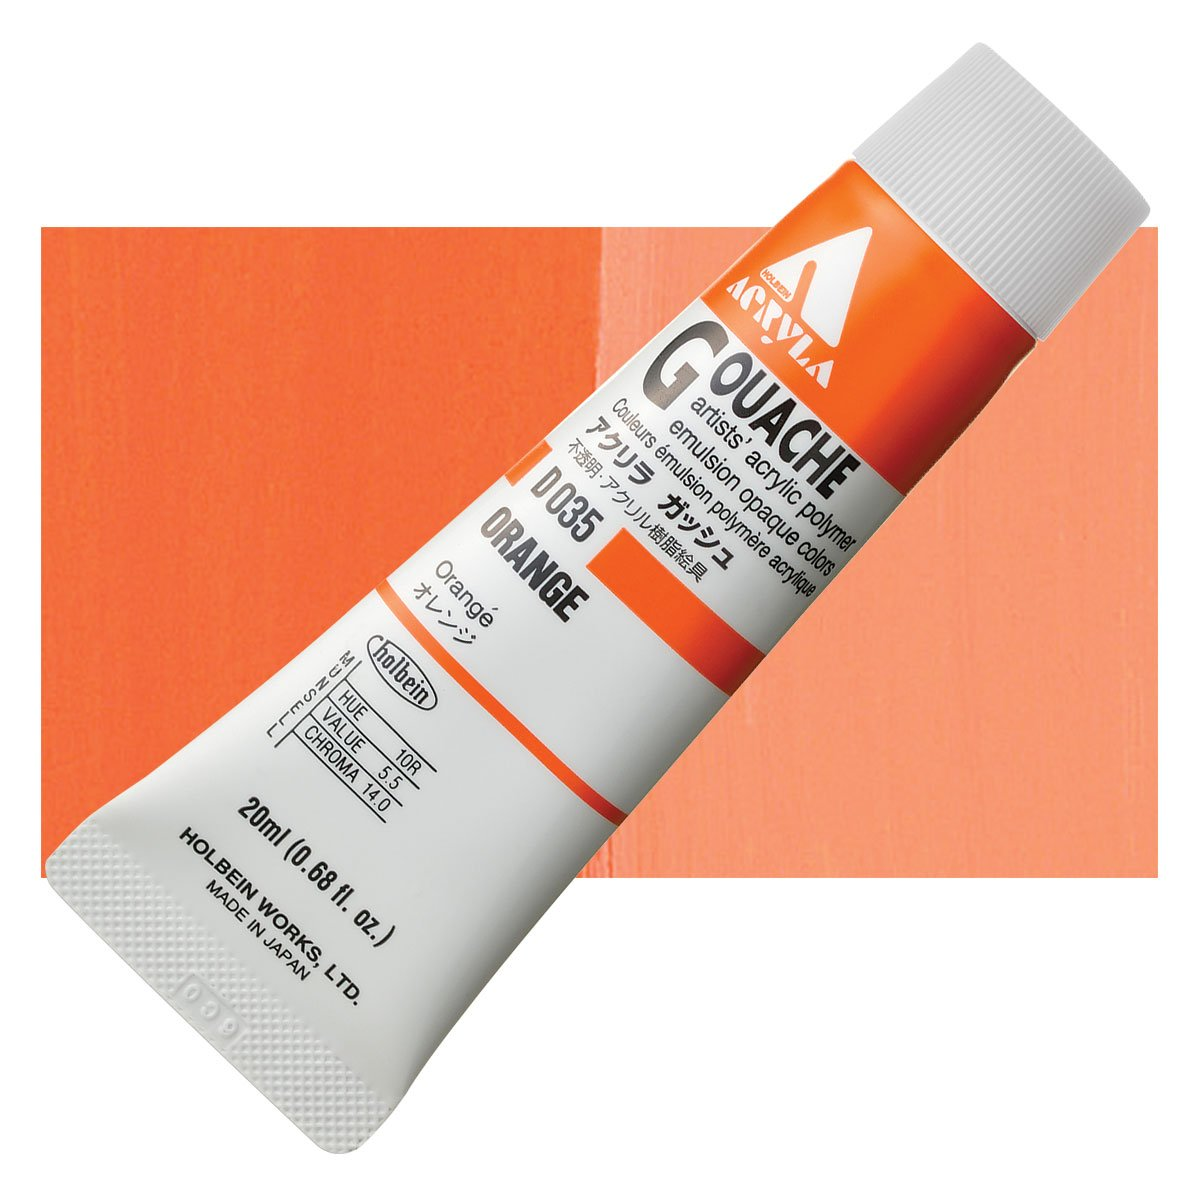 Holbein Acryla Gouache 20ml Tubes - Orange by Holbein - K. A. Artist Shop